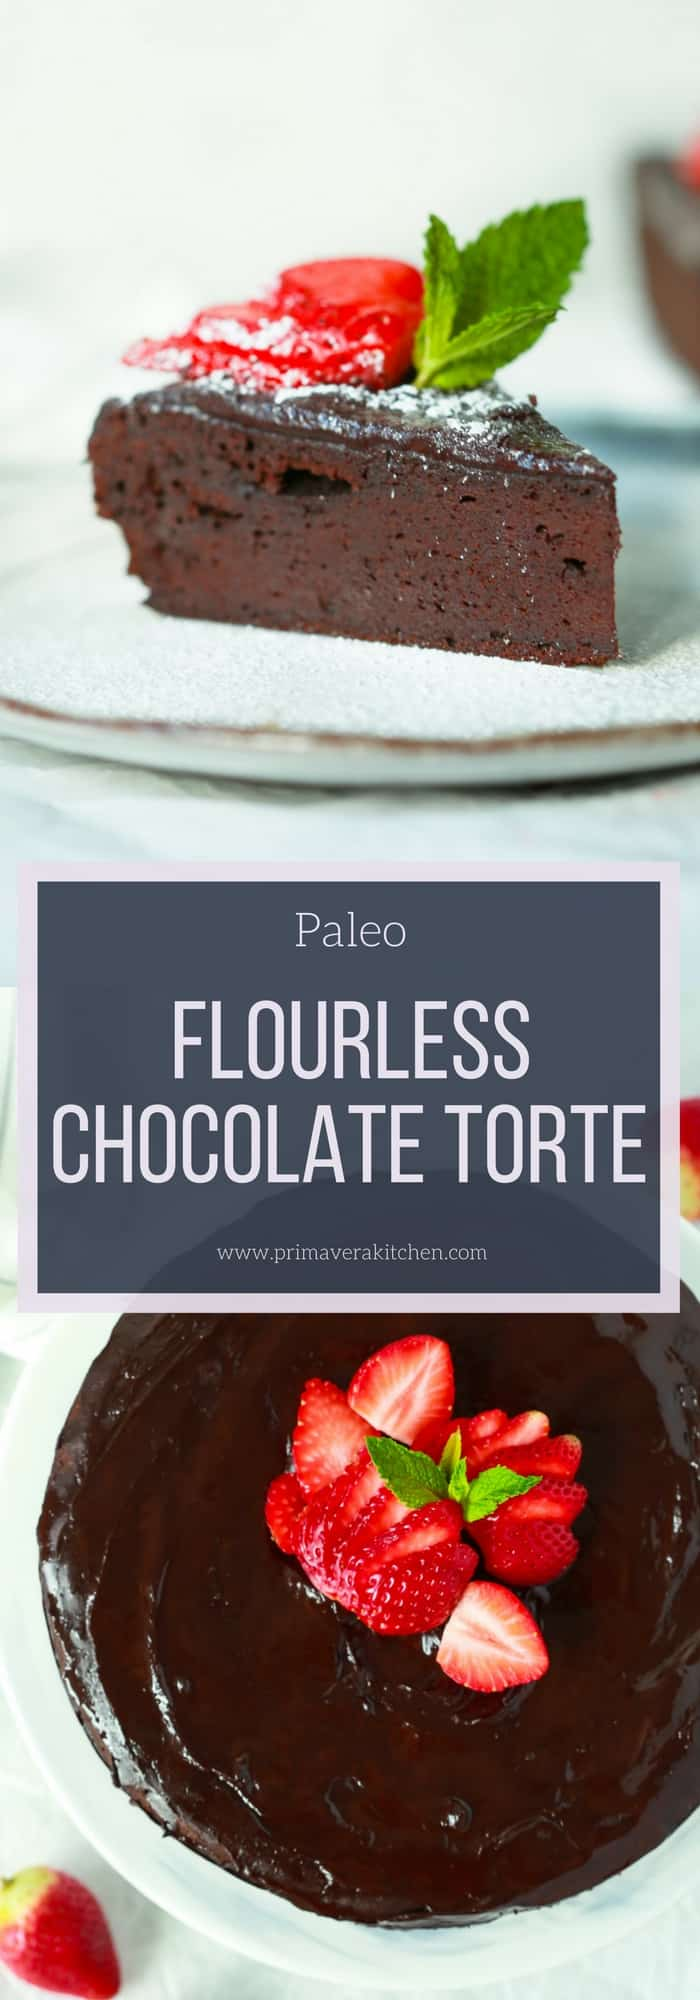 Paleo Flourless Chocolate Torte Recipe - Primavera Kitchen